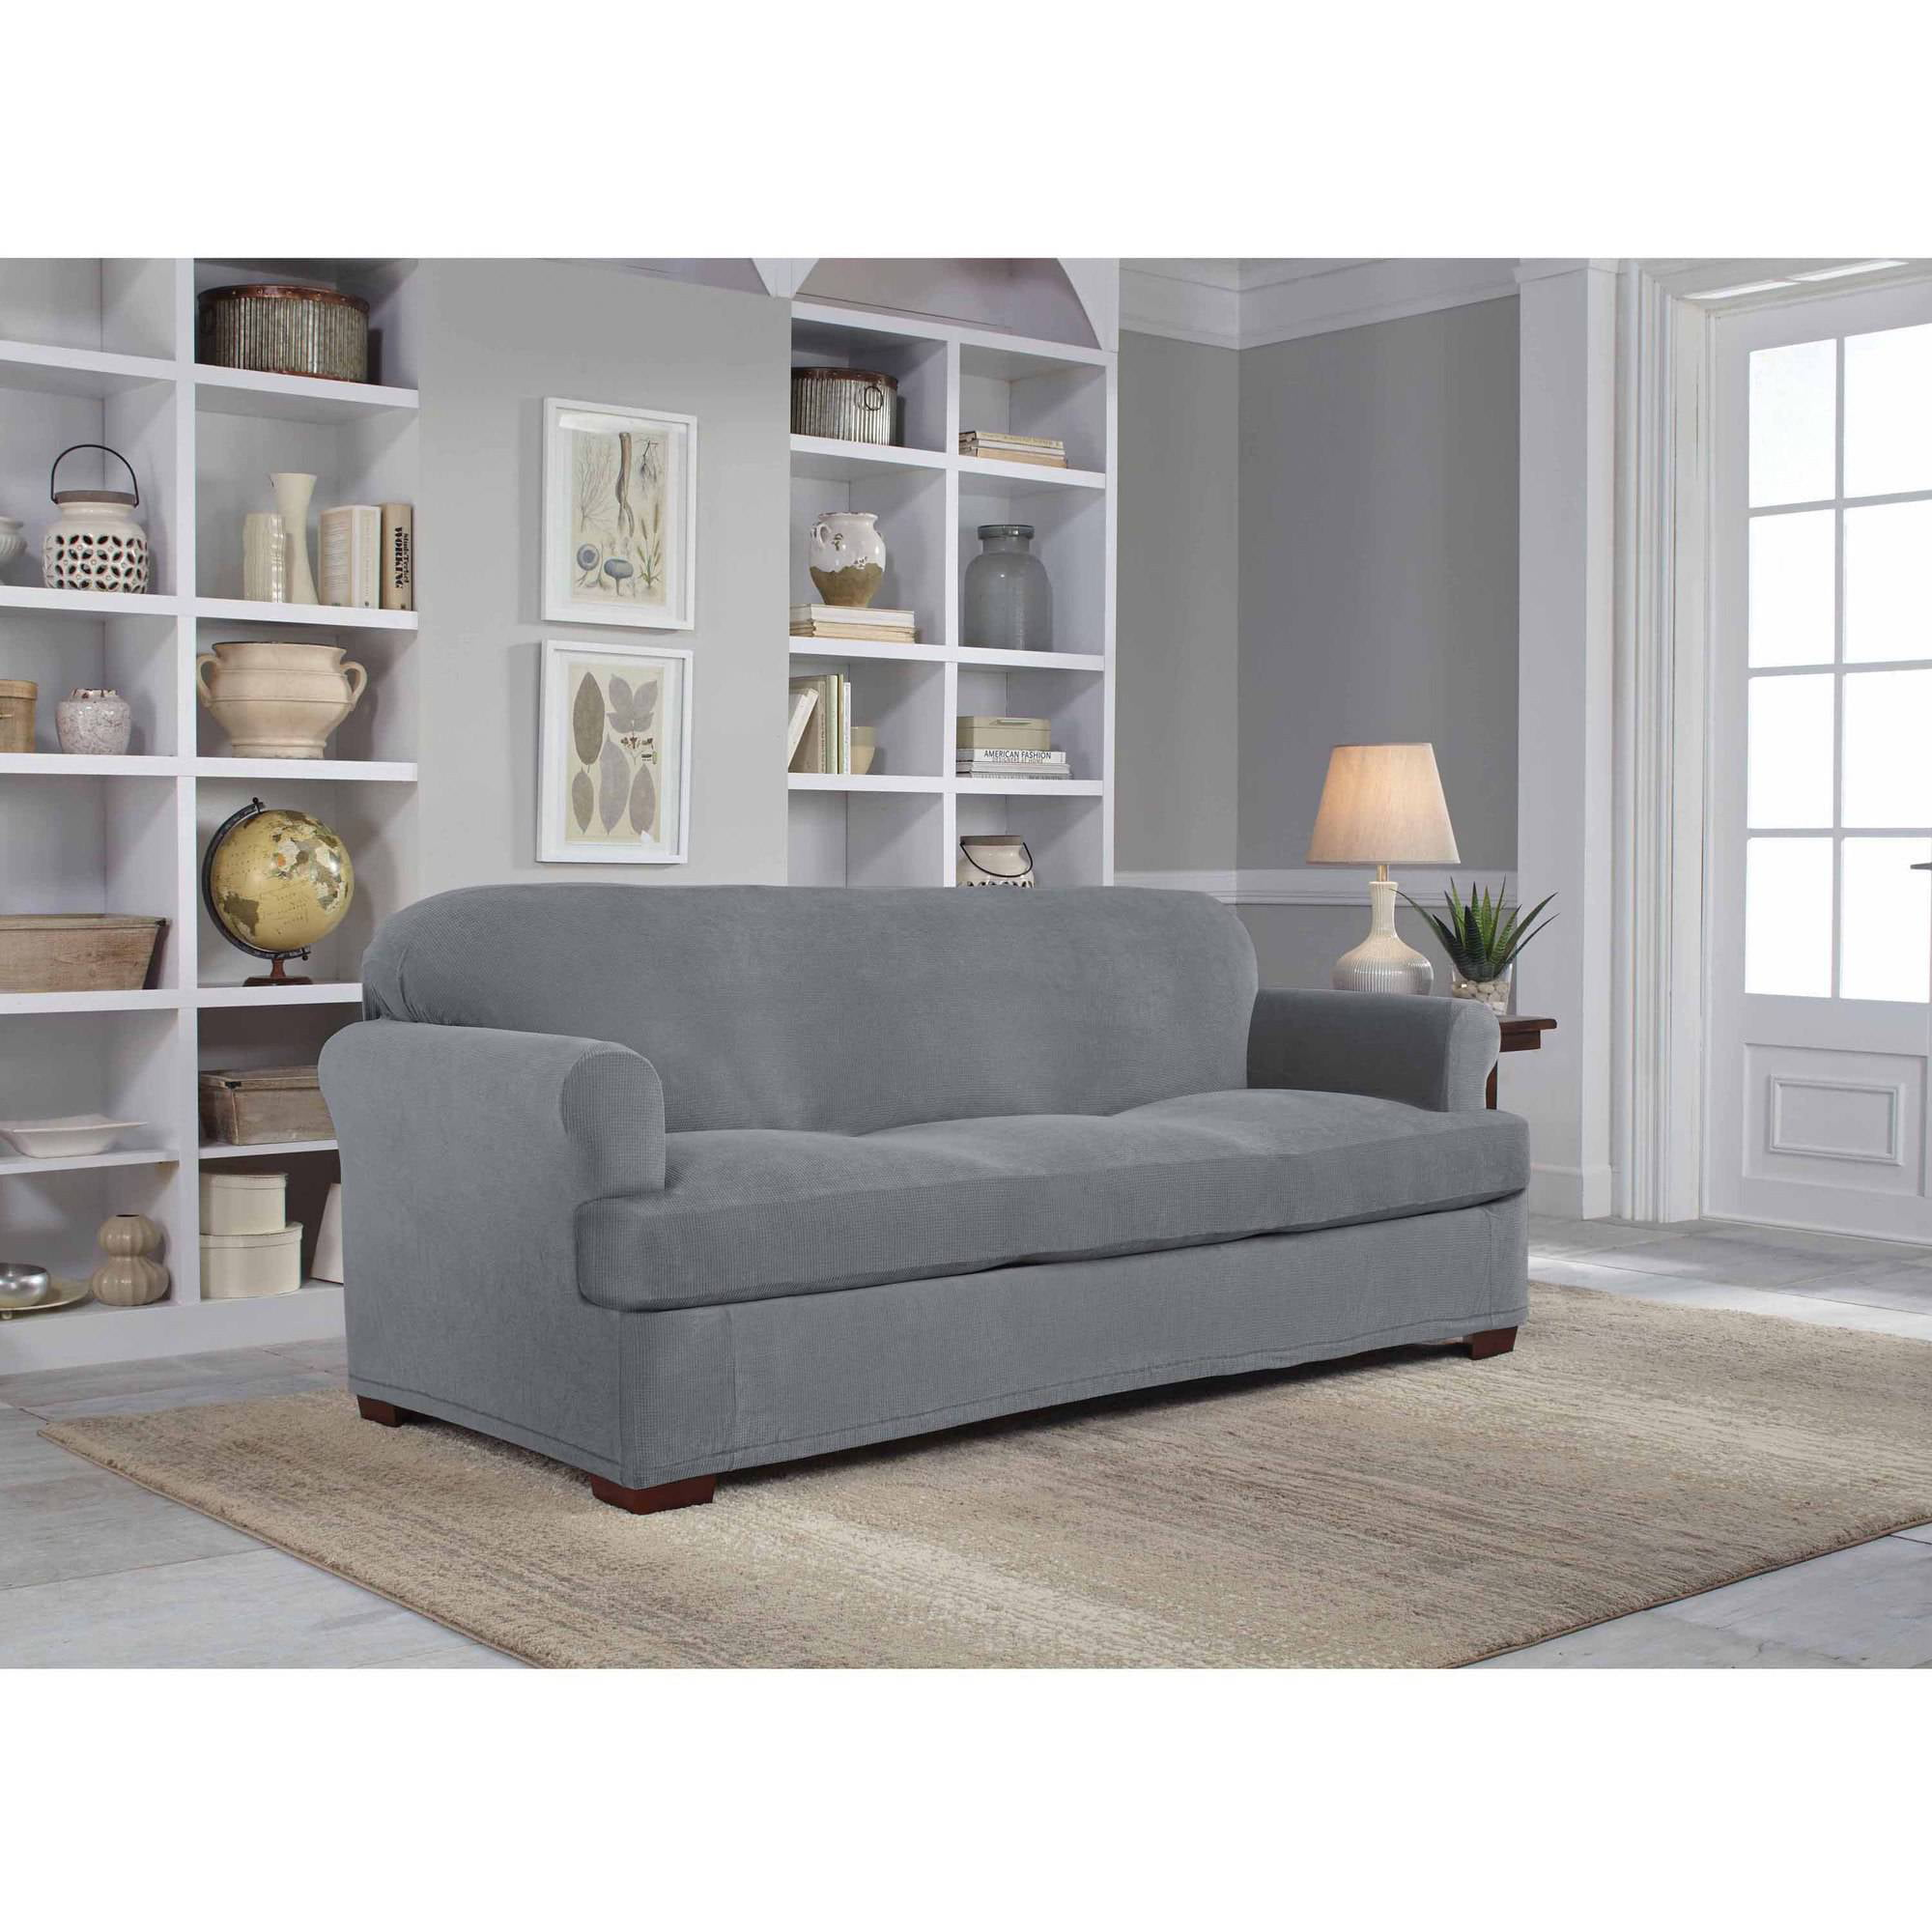 Serta Stretch Grid Slipcover, Sofa, 2-Piece T Cushion